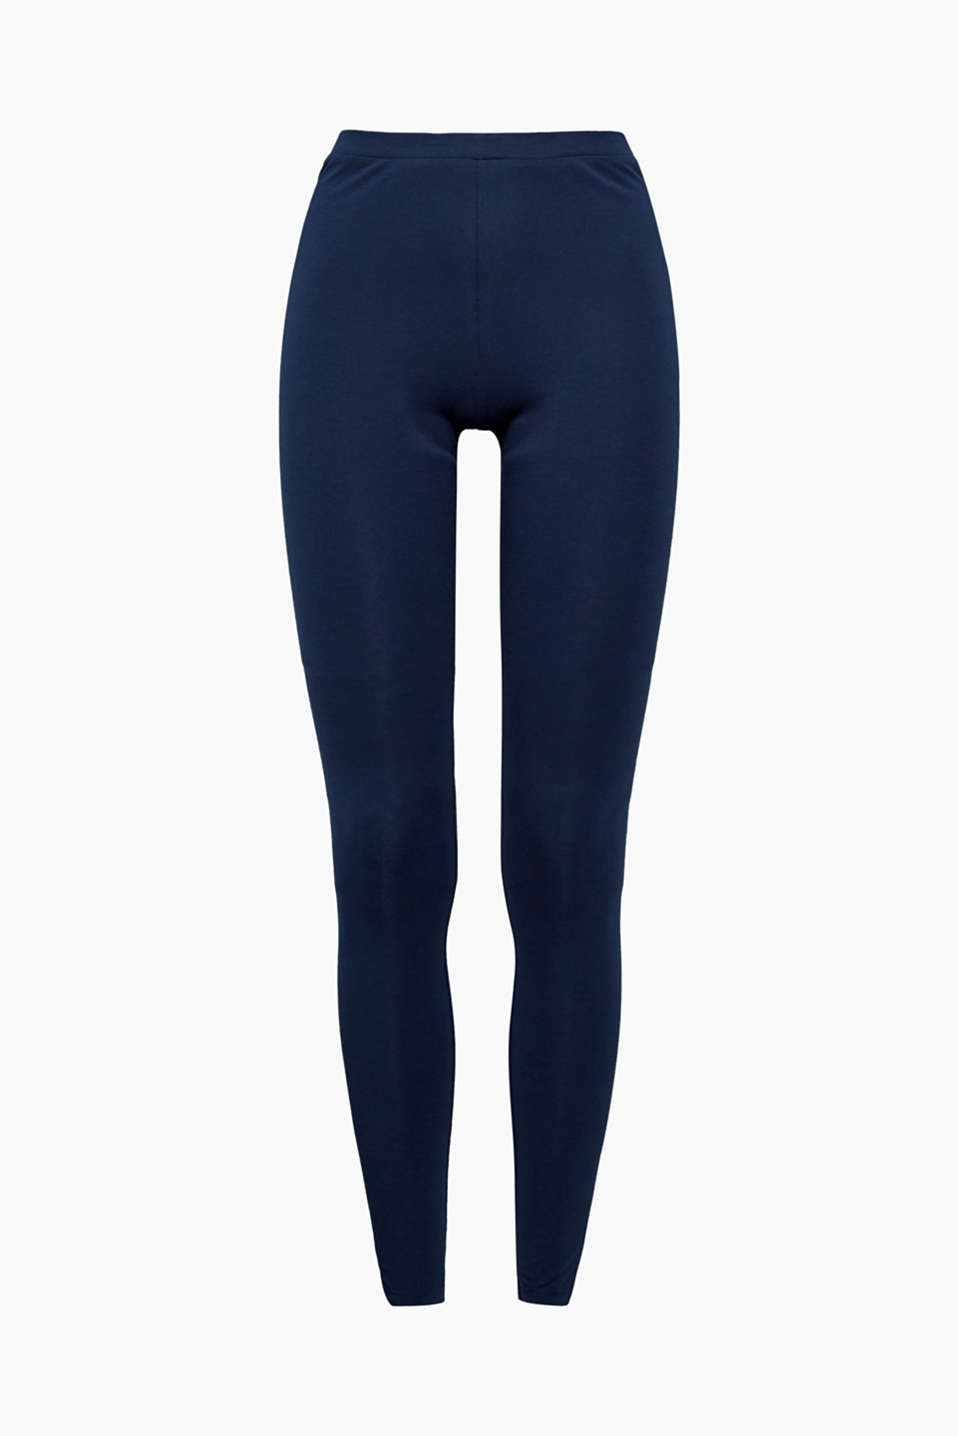 These soft leggings made from premium organic cotton with a percentage of stretch are an indispensable basic piece.